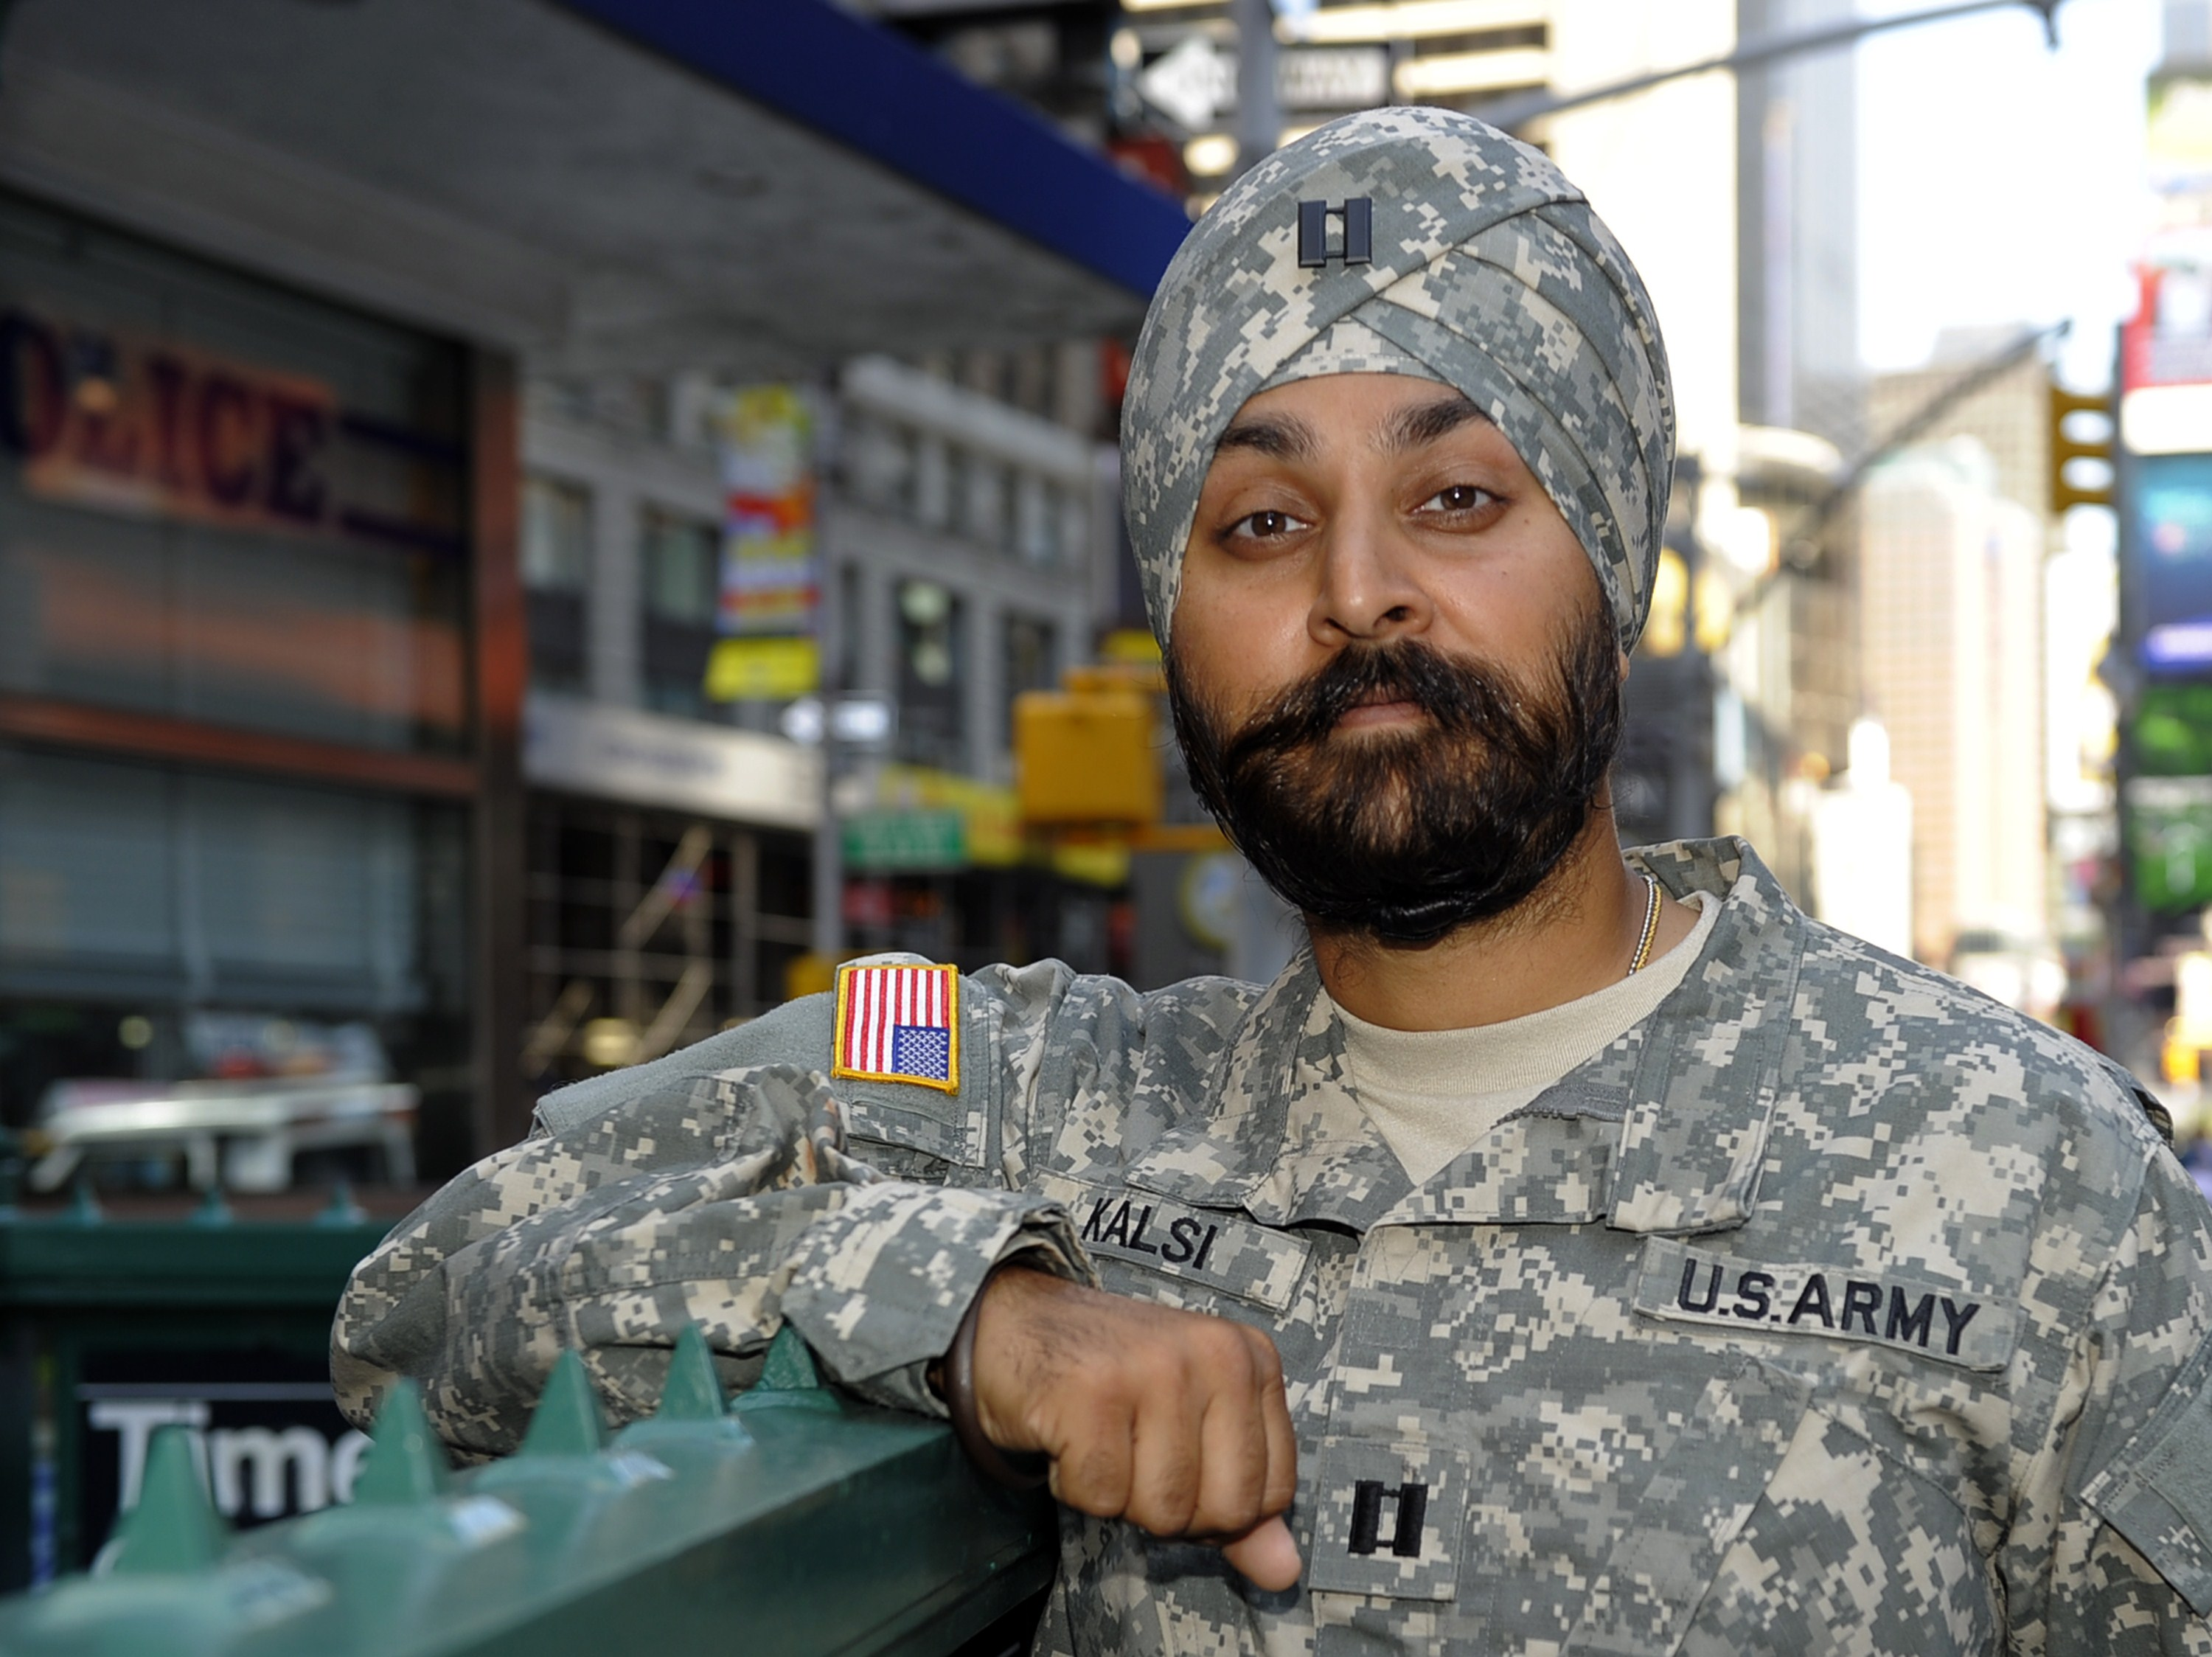 U.S. Army Captain Kamaljeet Singh Kalsi poses in Times Square, New York City, on Sept. 14, 2010